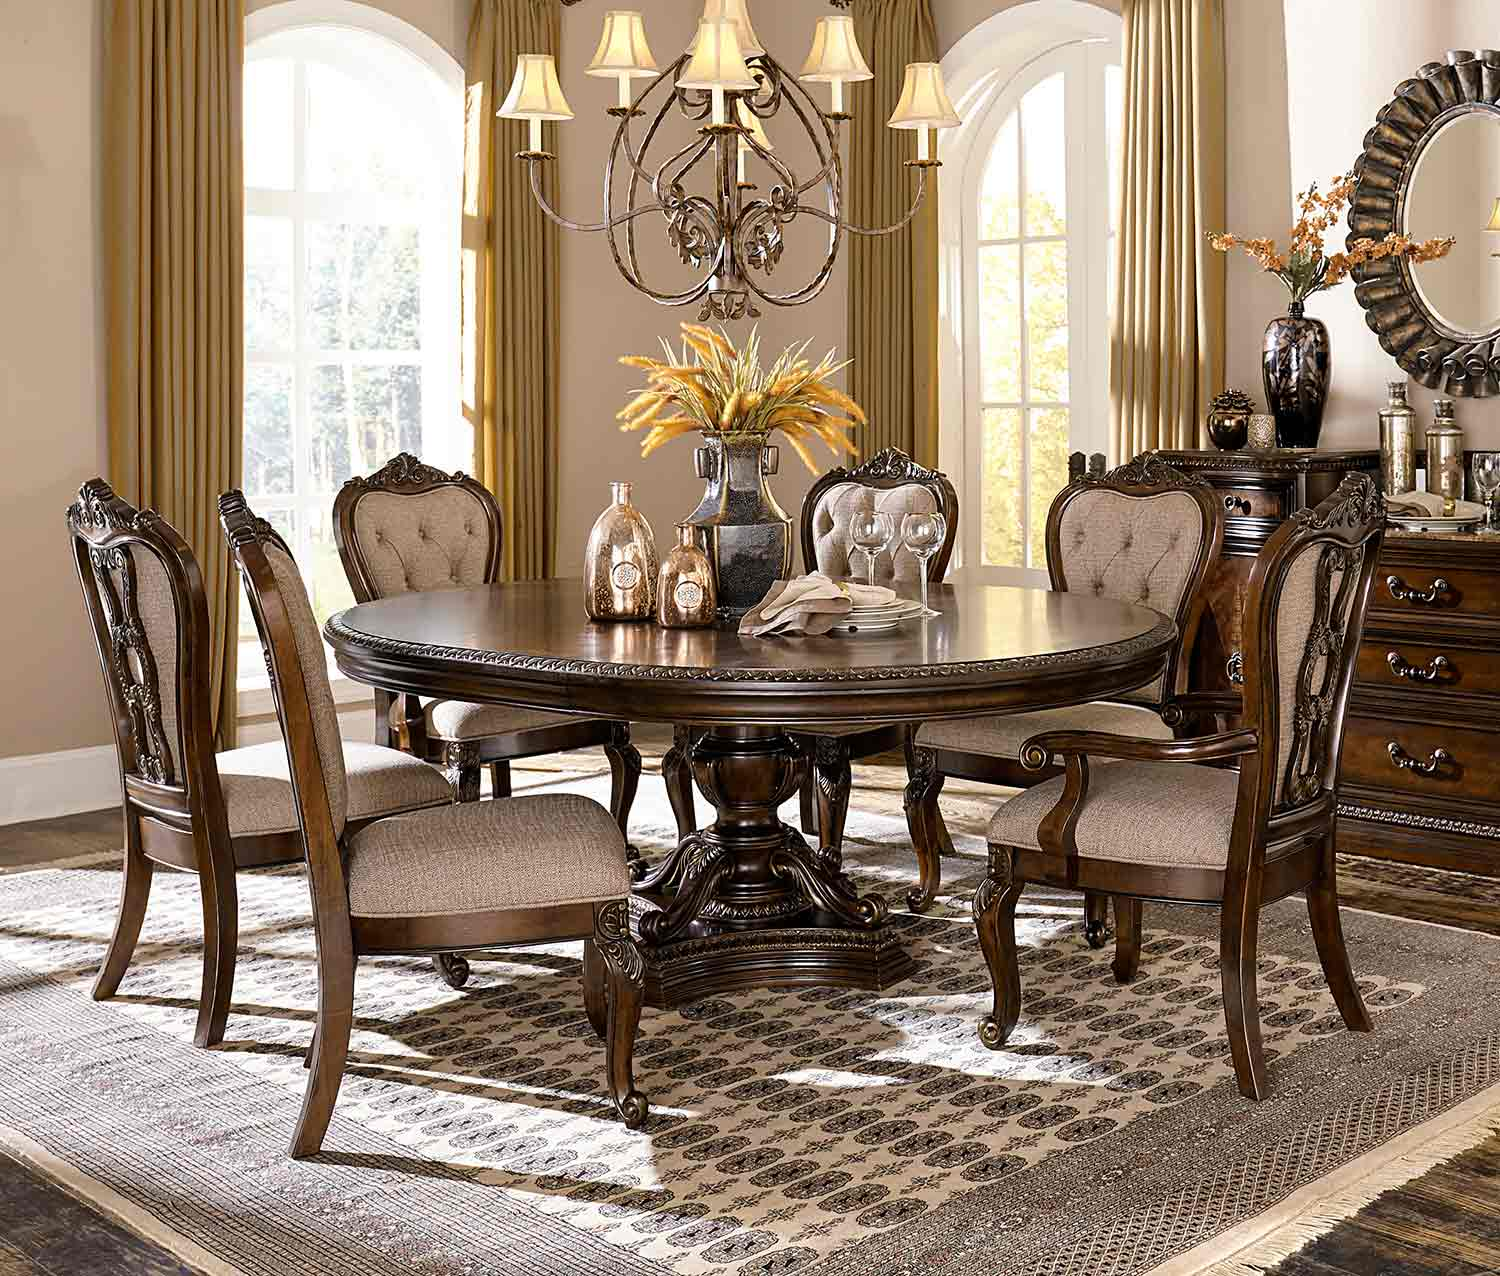 Dining Room Sets Dallas Tx: Homelegance Bonaventure Park 7pc Cherry Round Dining Table